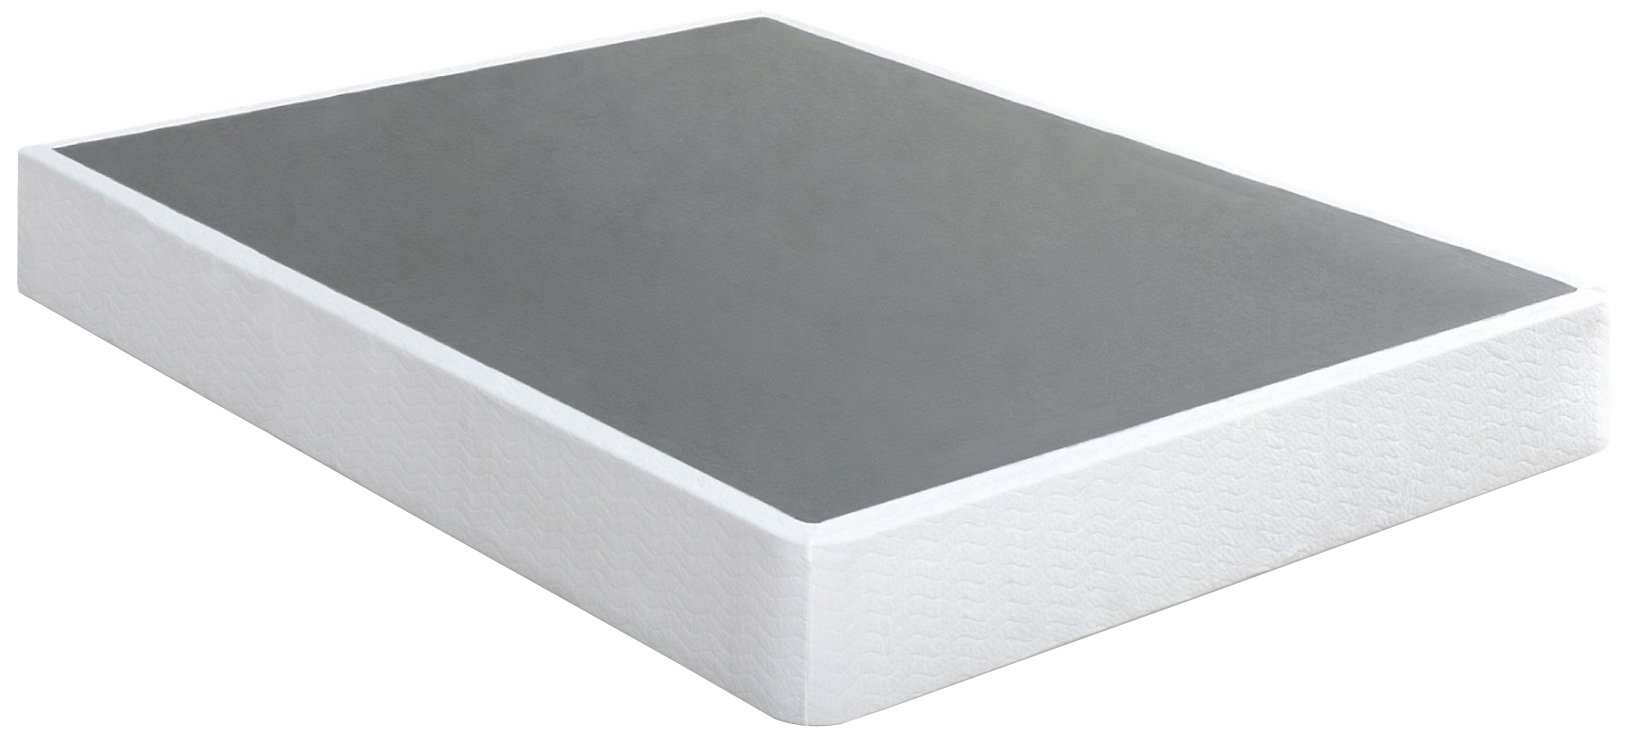 zinus 9 inch high profile smart box spring mattress foundation strong steel 841550068634 ebay. Black Bedroom Furniture Sets. Home Design Ideas